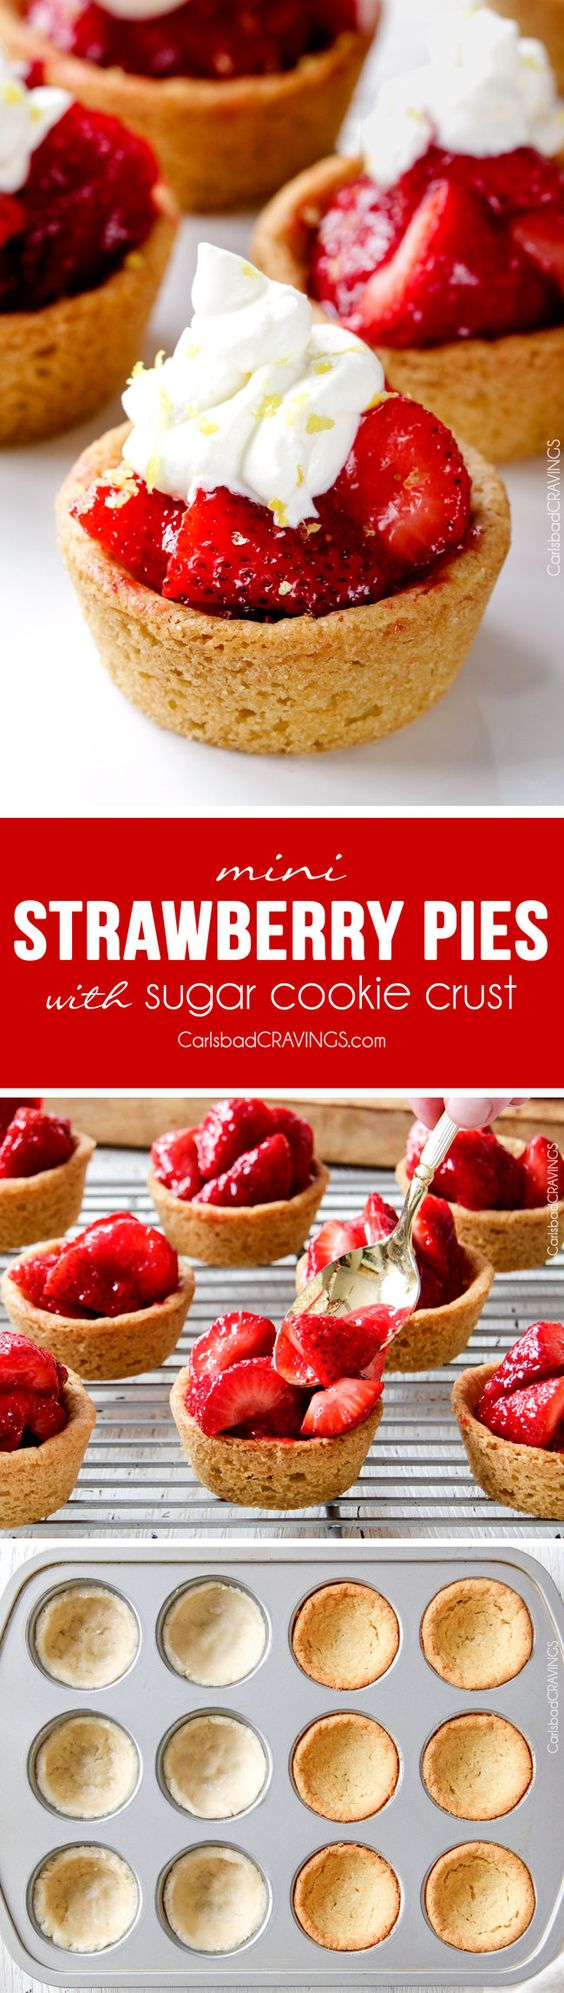 Mini Strawberry Pies Recipe via Carlsbad Cravings - The best strawberry pie filling nestled in easy soft, buttery, sugar cookie crusts make the most adorable, crowd pleasing and delicious Mini Strawberry Pies! And they are make ahead for stress free entertaining! The BEST Bite Size Dessert Recipes - Mini, Individual, Yummy Treats, Perfectly Pretty for Your Baby and Bridal Showers, Birthday Party Dessert Tables and Holiday Celebrations! #bitesizedesserts #individualdesserts #minidesserts #tinyfood #partydesserts #dessertsforacrowd #dessertrecipes #holidayrecipes #babyshowerdesserts #bridalshowerdesserts #weddingreceptiondesserts #easydesserts